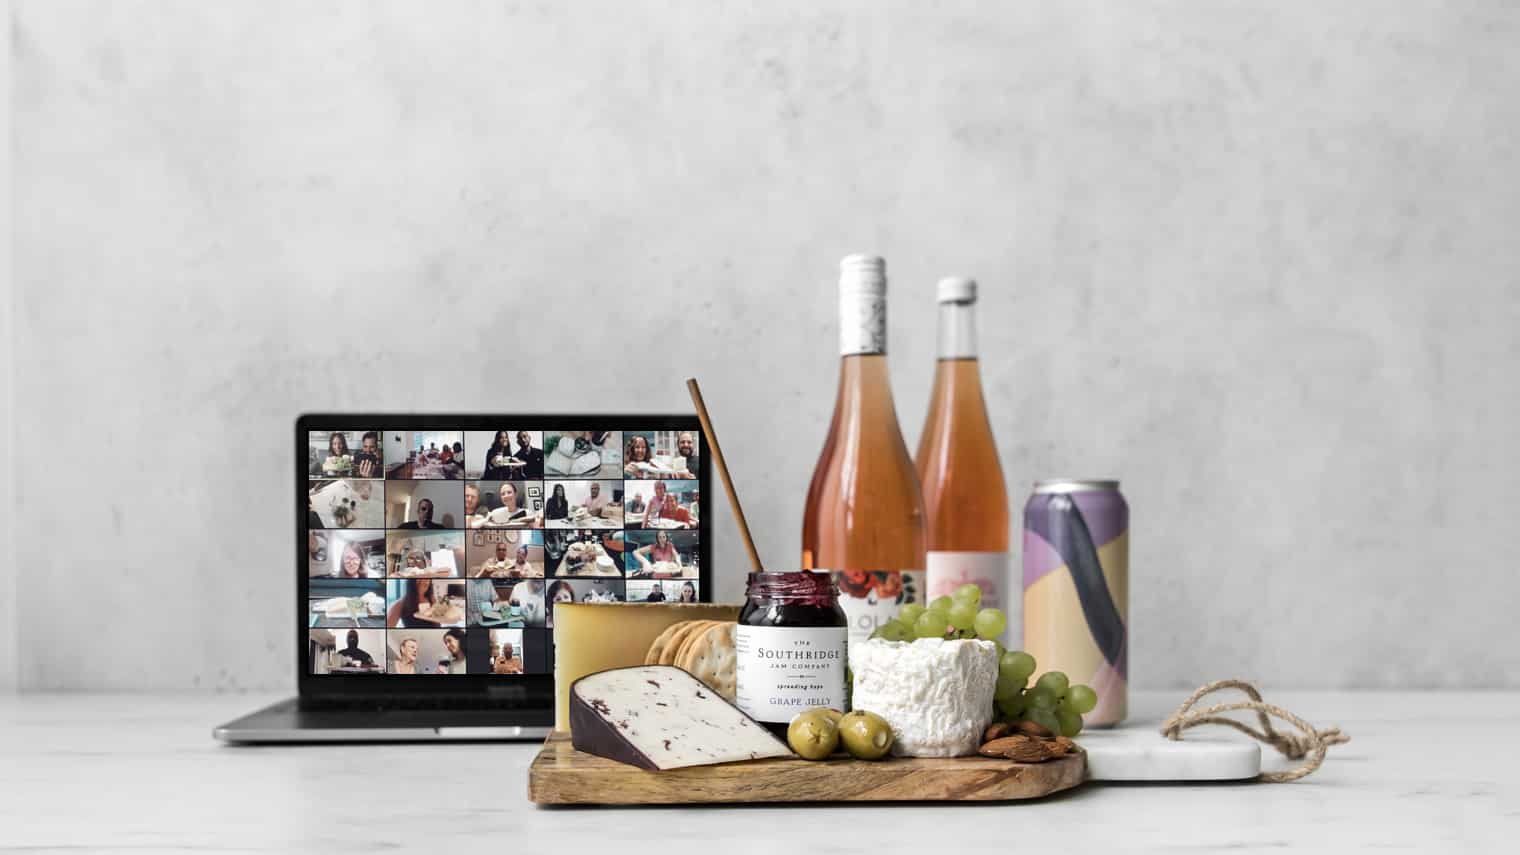 Bottles of wine, laptop and styled cheese board